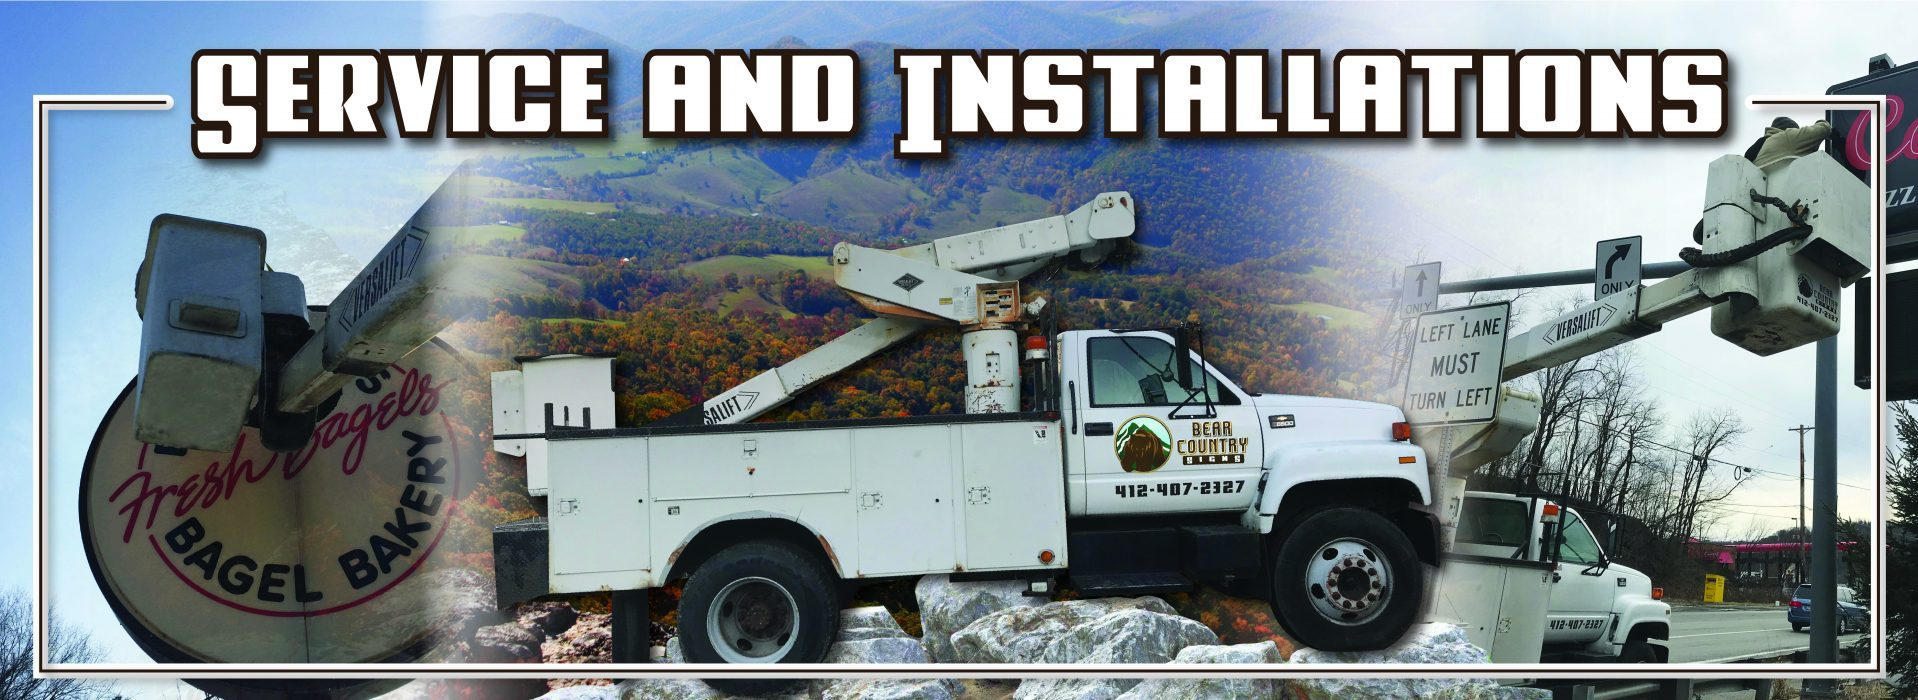 service and installations